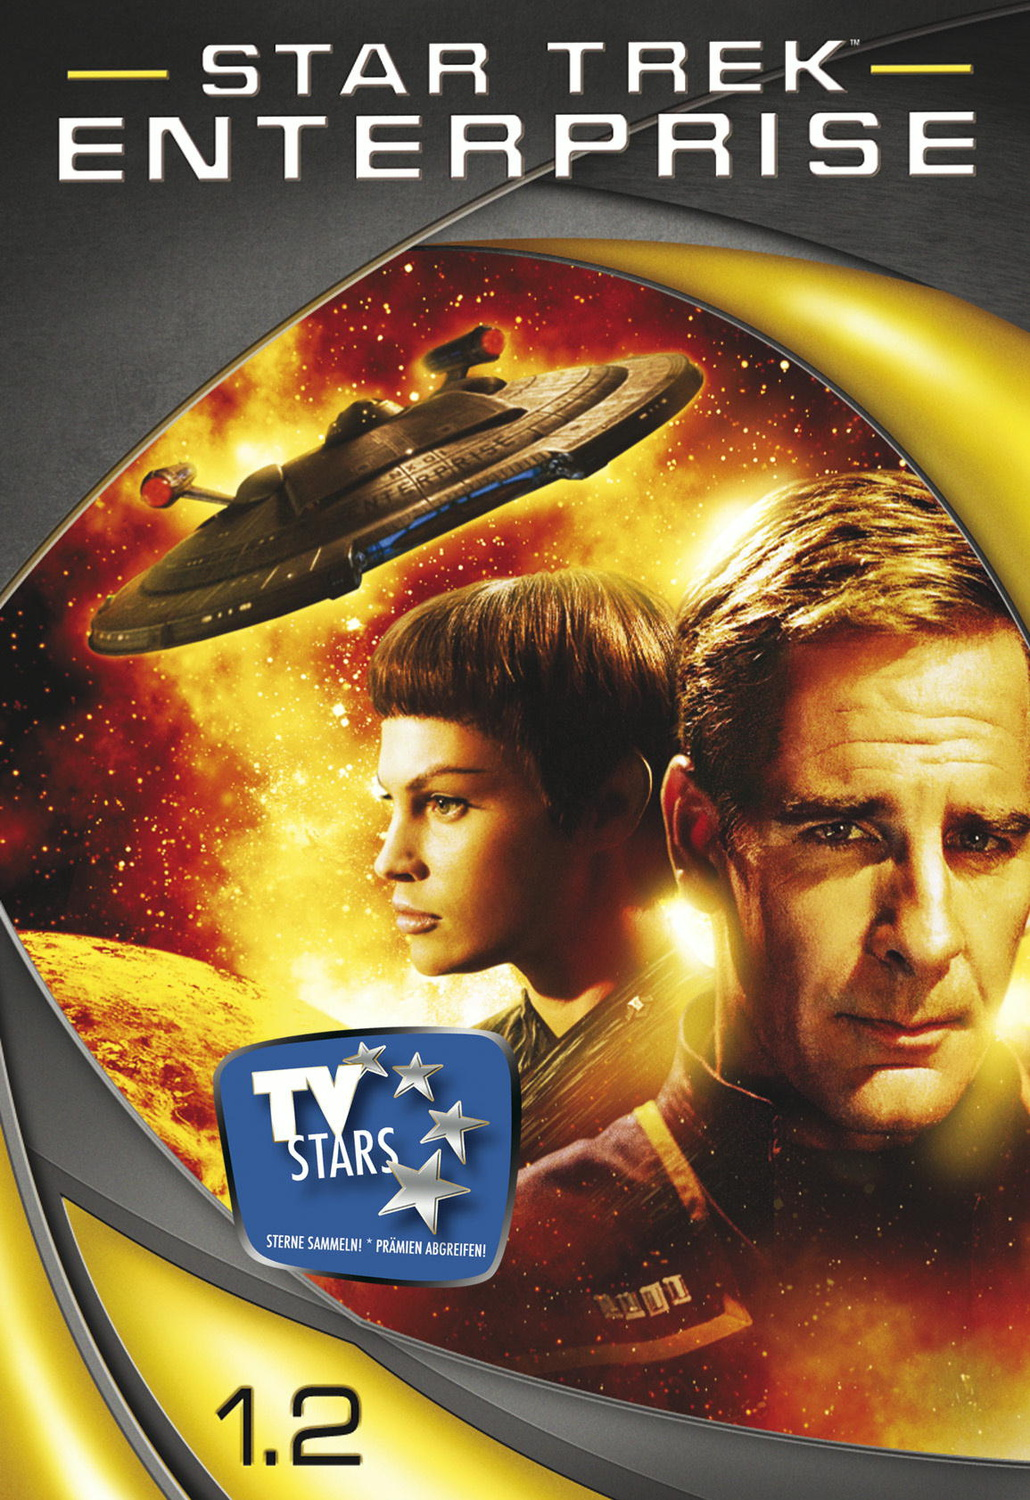 Star Trek: Enterprise - Season 1.2 [4 DVDs]